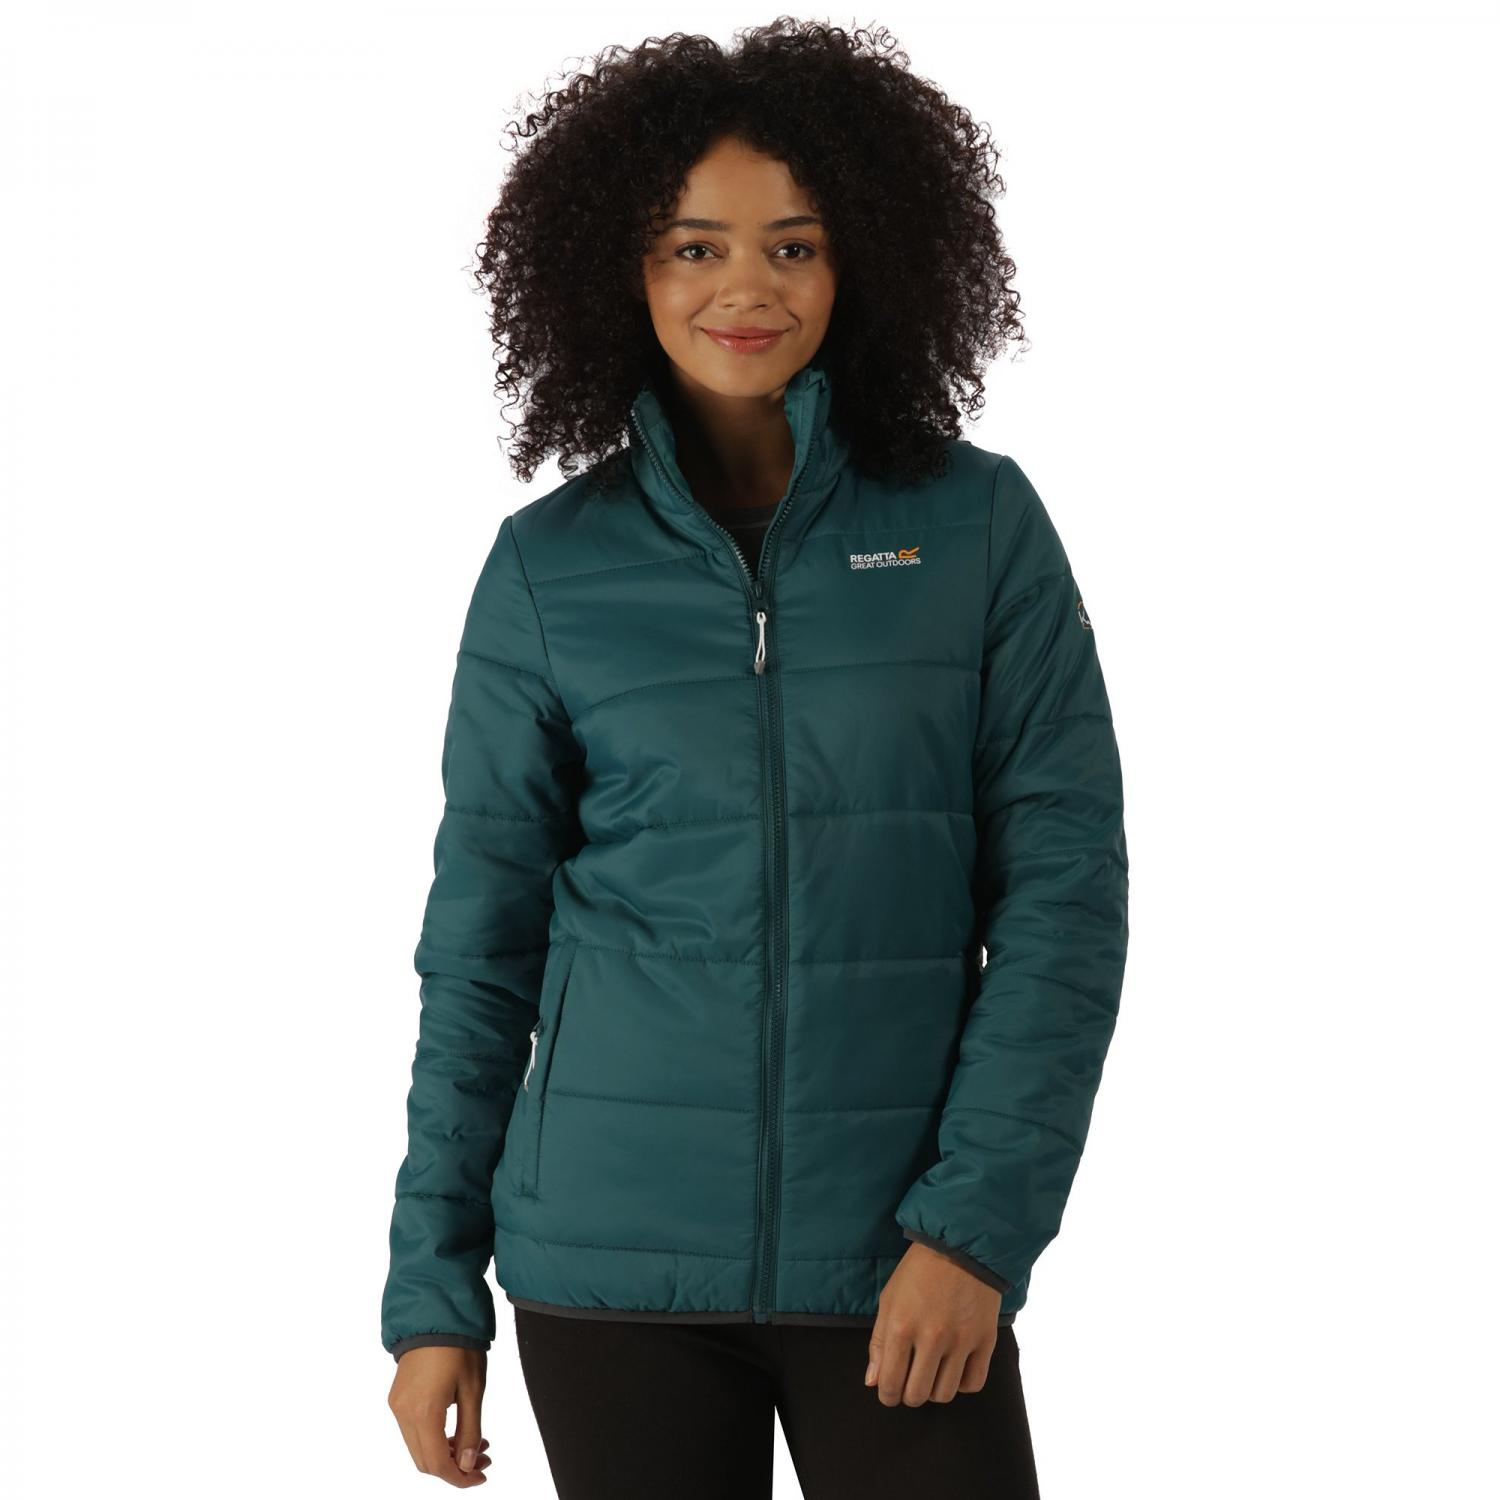 Womens Zyber Jacket Deep Teal